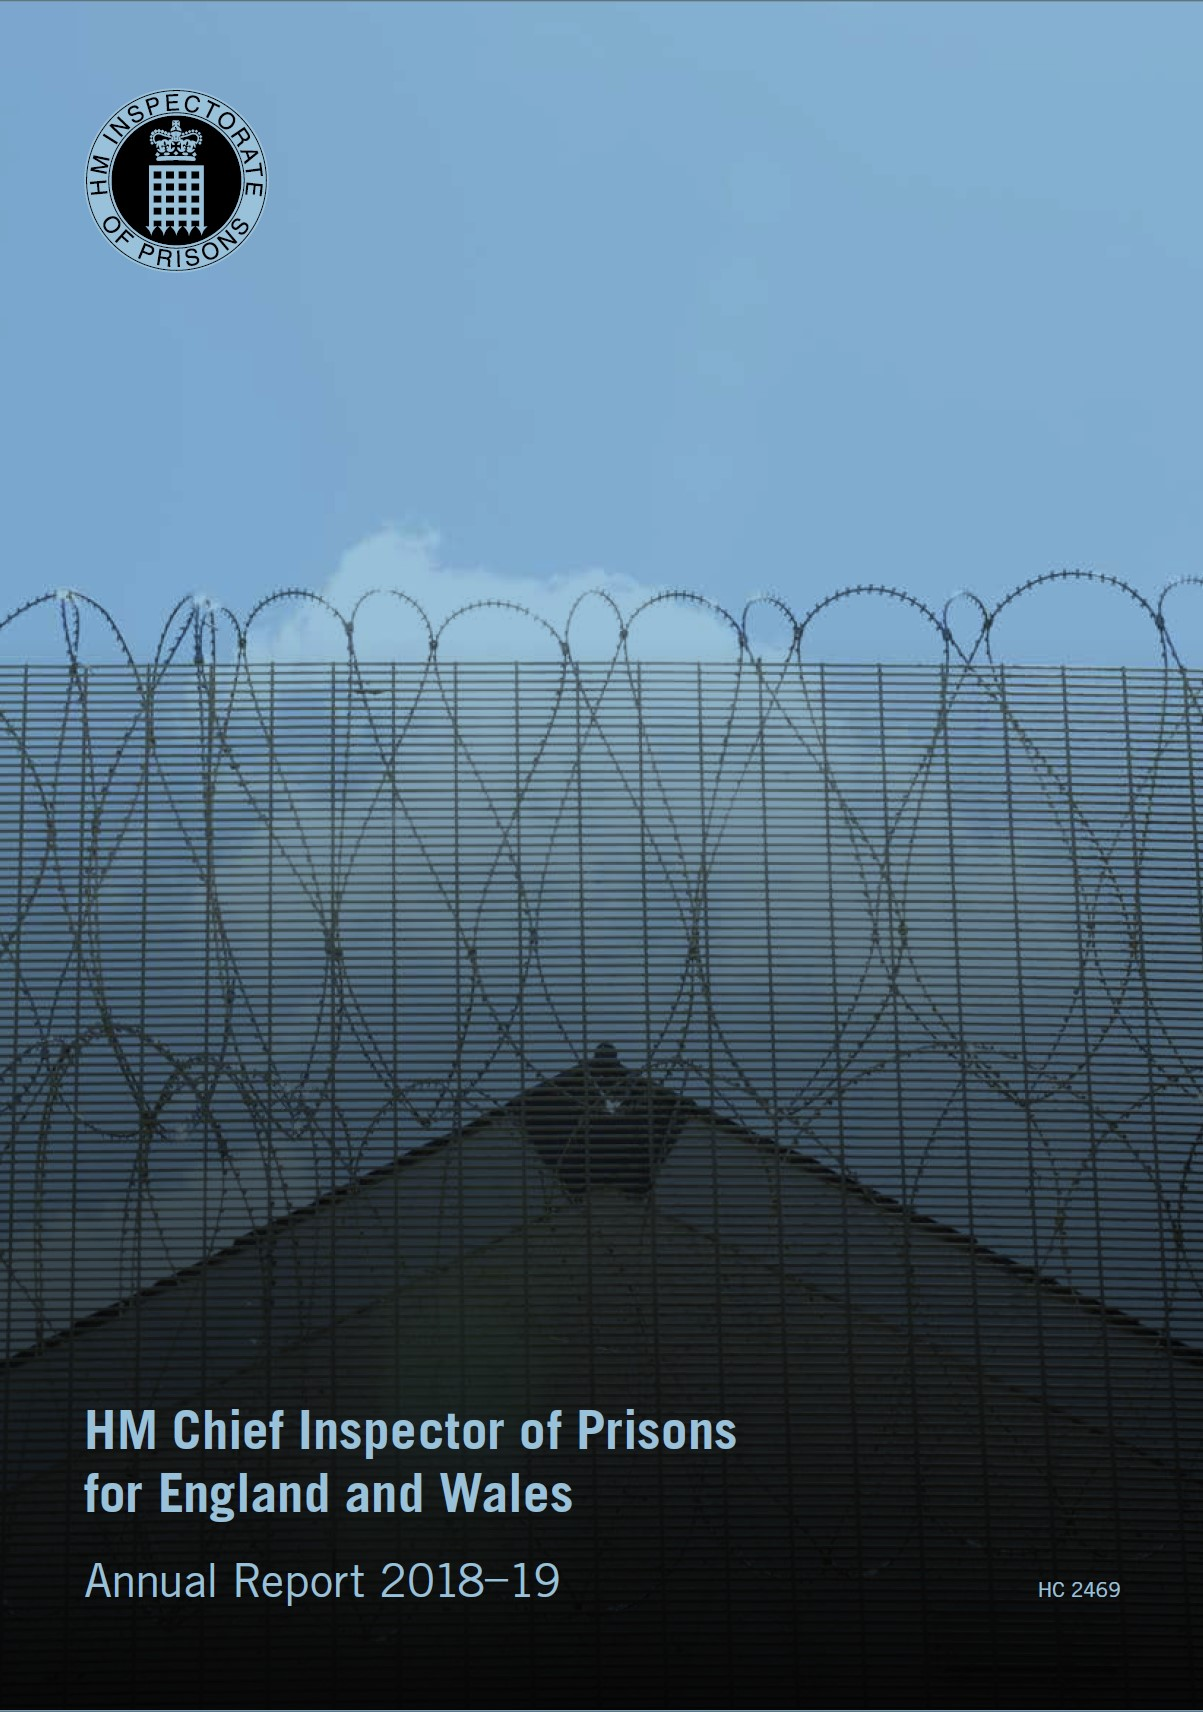 Prisoners In UK Self-Identify As Transgender To Get Better Detainment Conditions